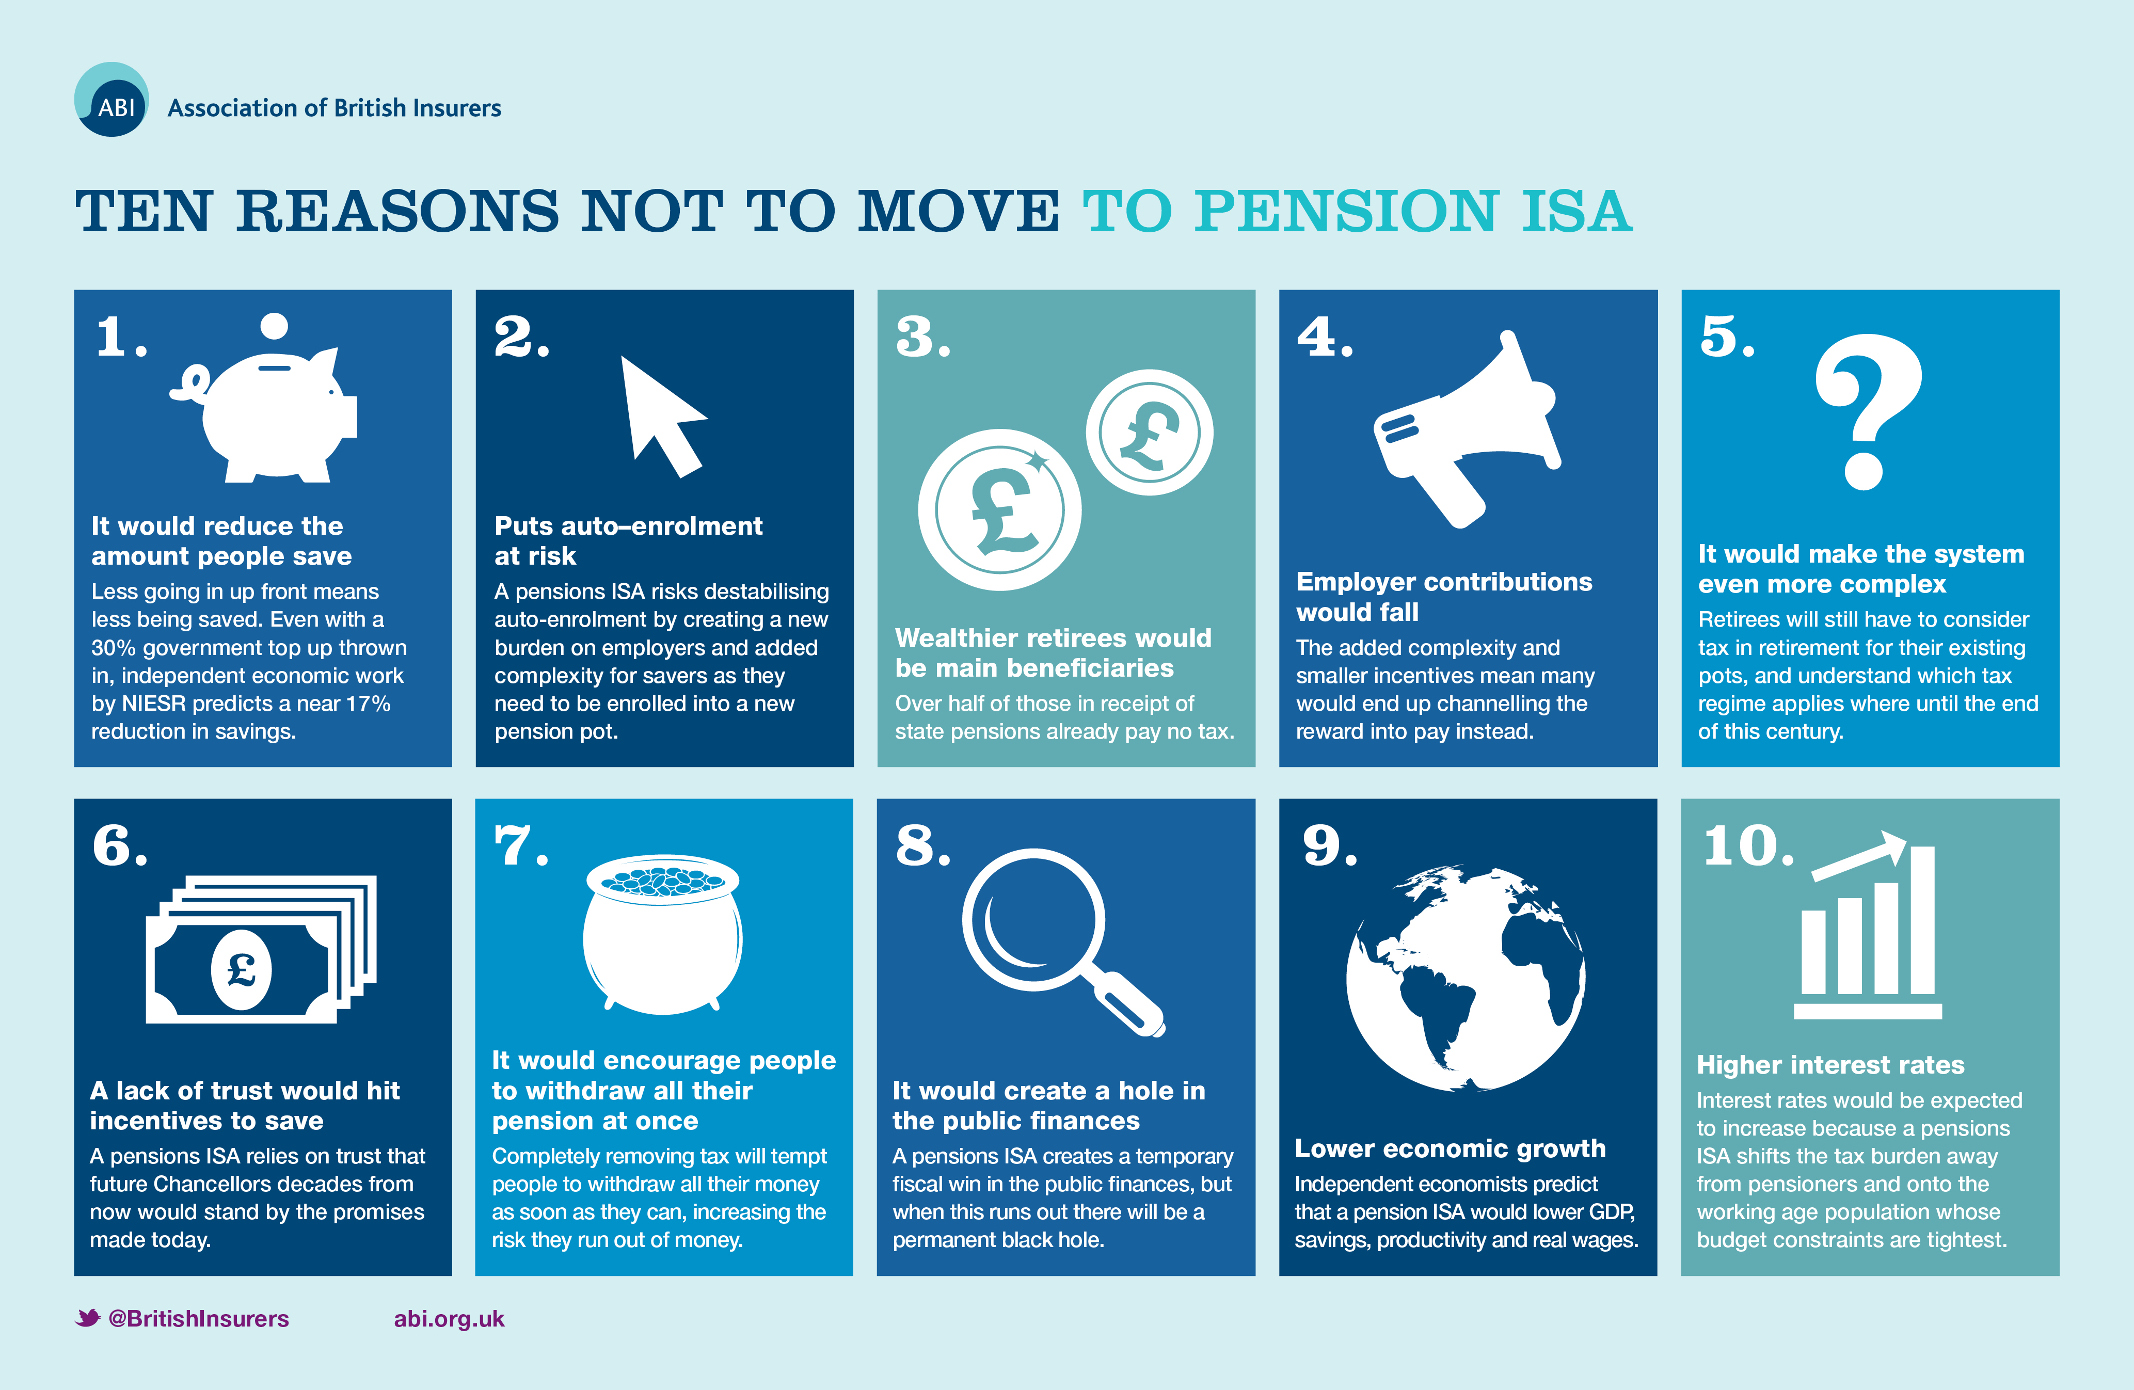 10 reasons not to move to Pension ISA